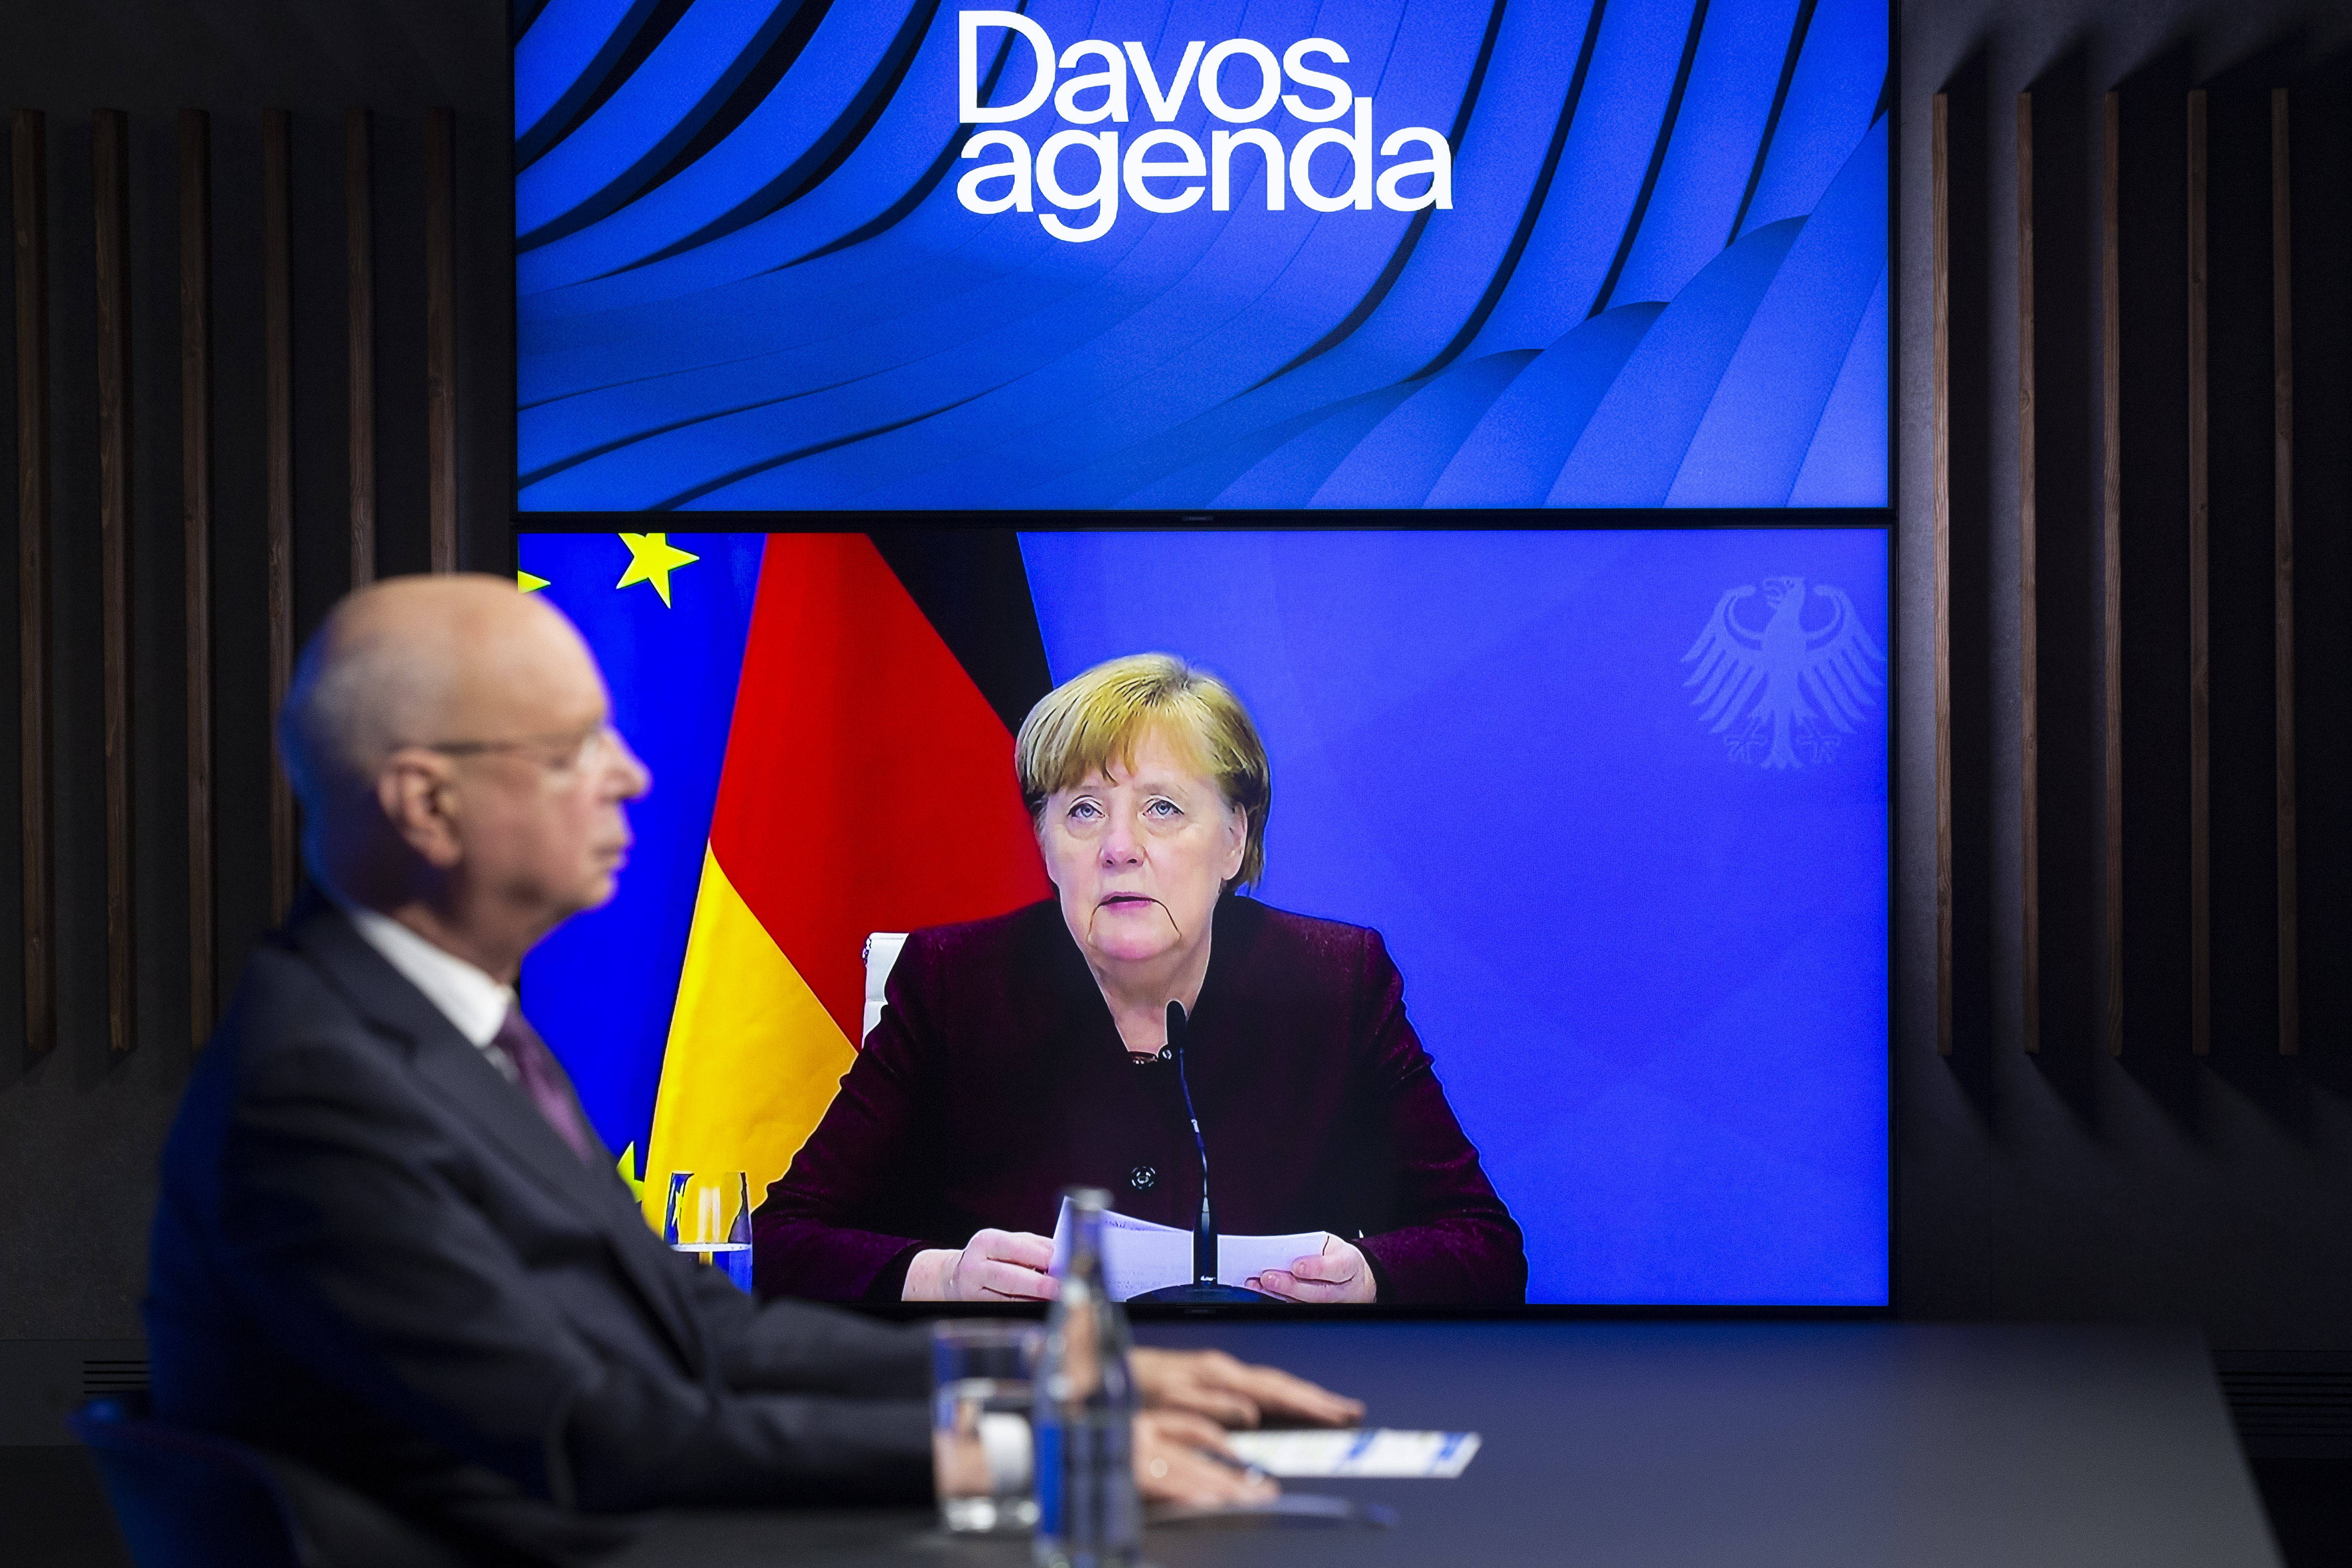 Klaus Schwab, left, the founder and executive chairman of the World Economic Forum, listens to German Chancellor Angela Merkel, shown on a video screen, as part of the group's annual conference in Davos, Switzerland, on Jan. 26. (Salvatore Di Nolfi/Keystone/AP)